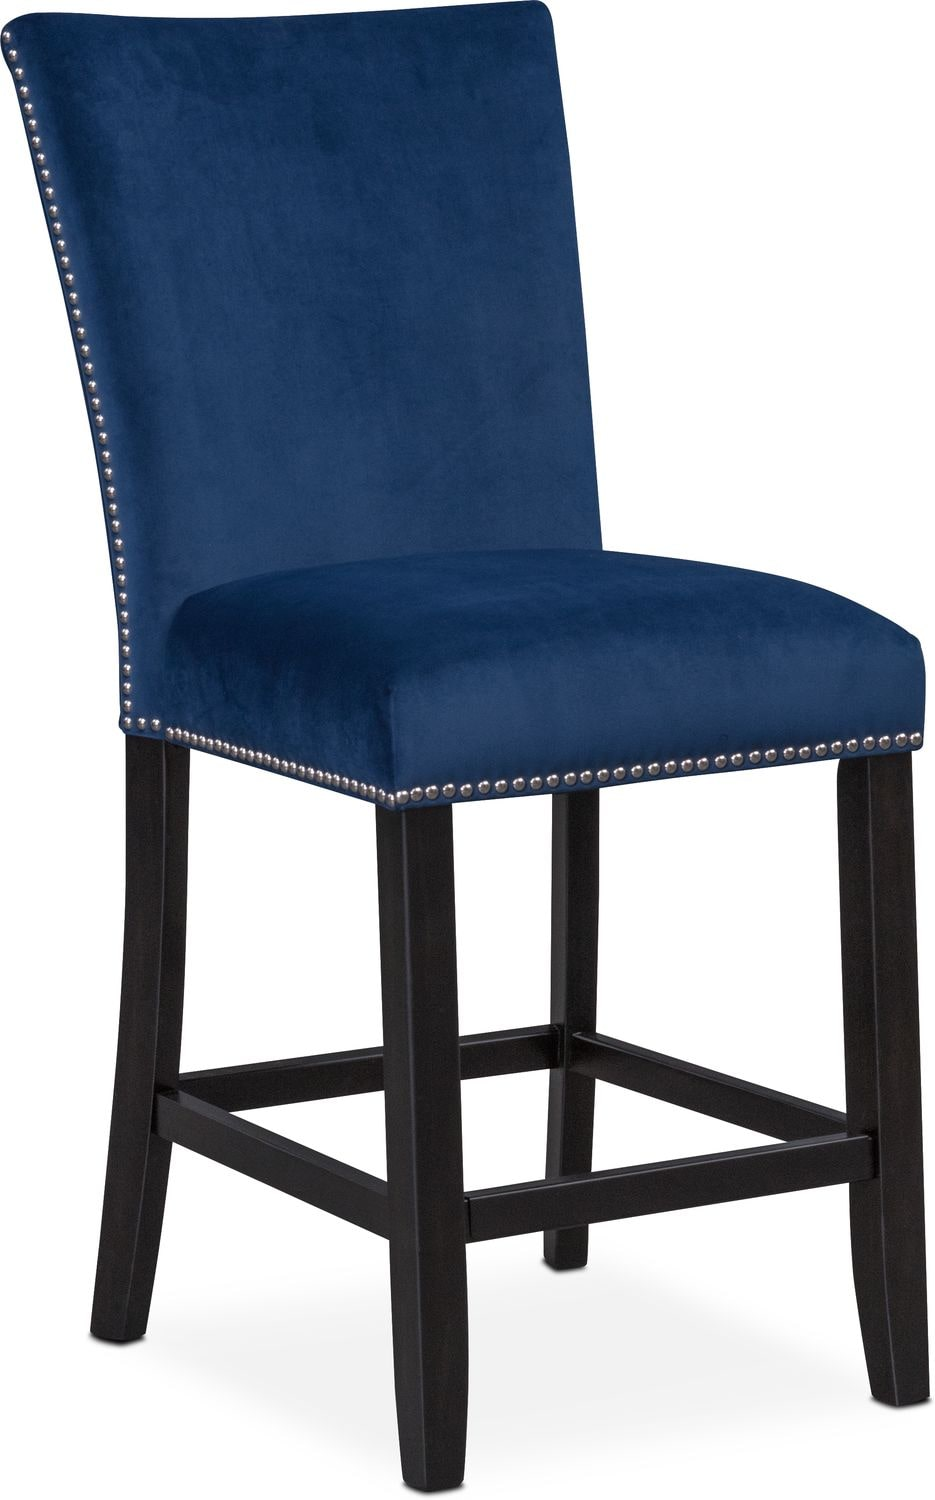 Dining Room Furniture - Artemis Upholstered Stool